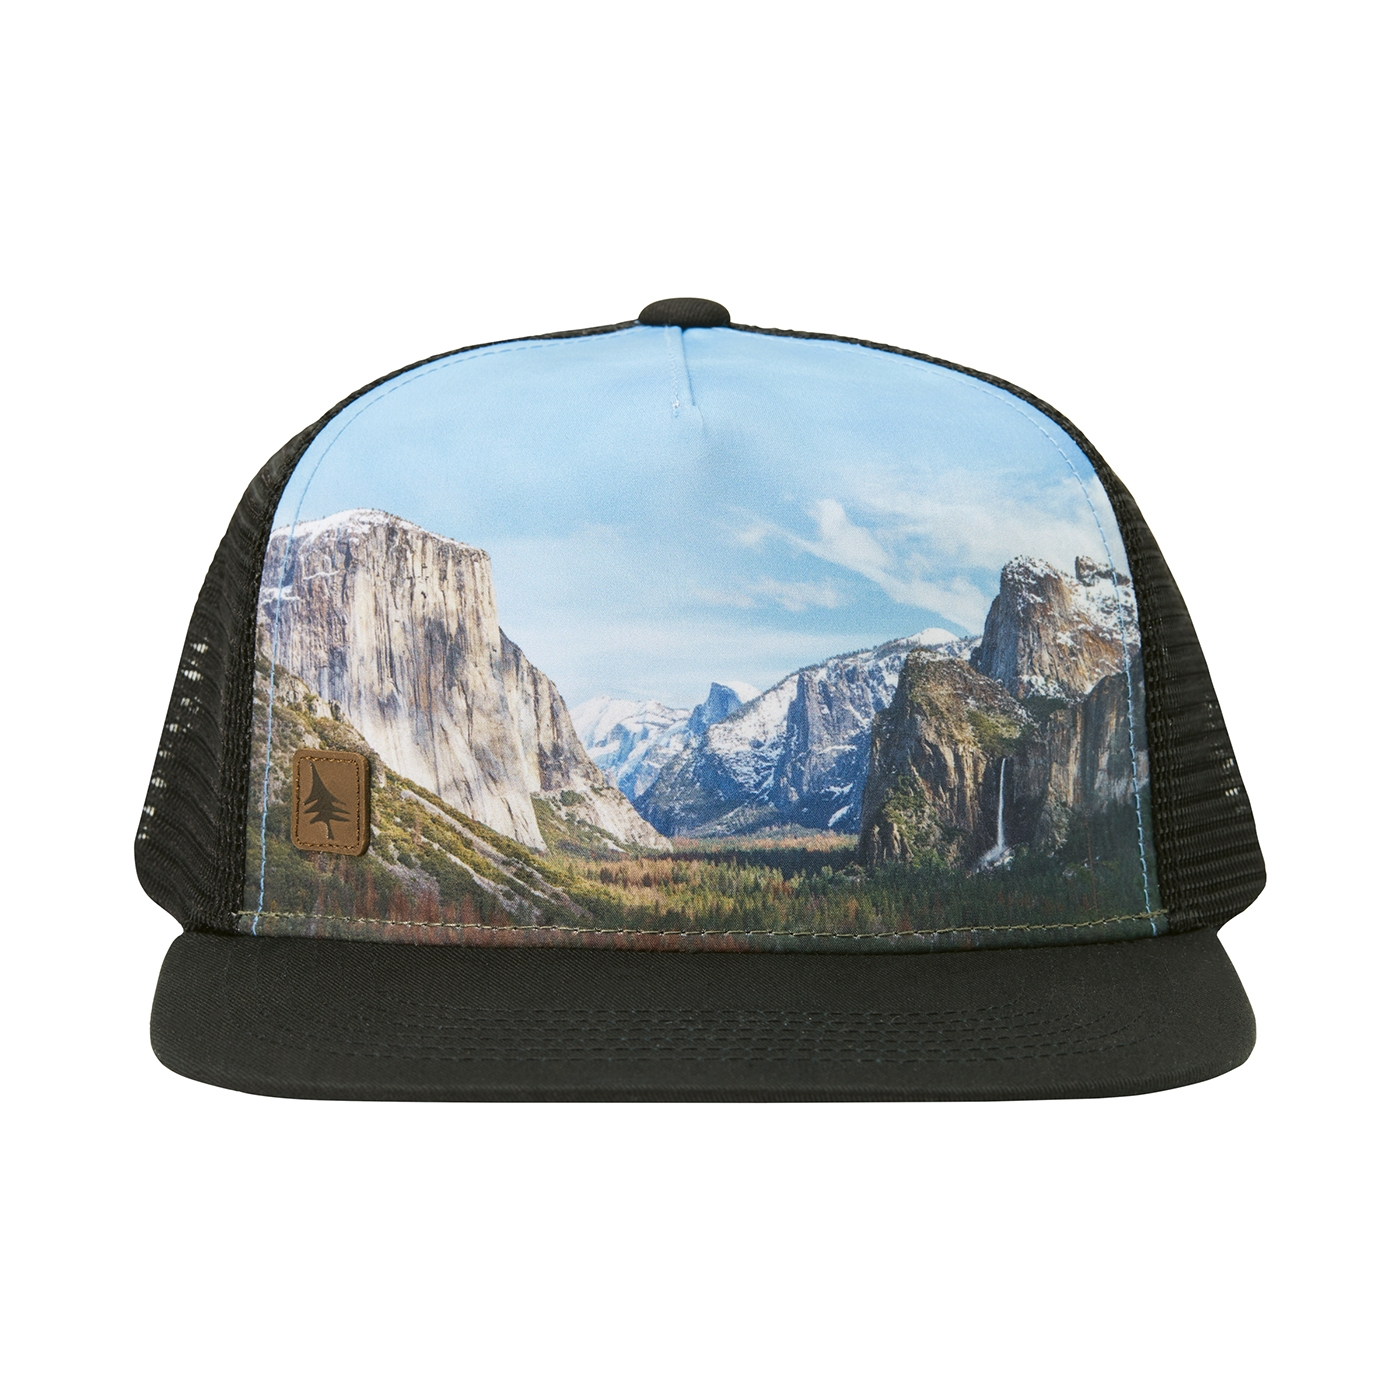 Tunnel View Eco Hat